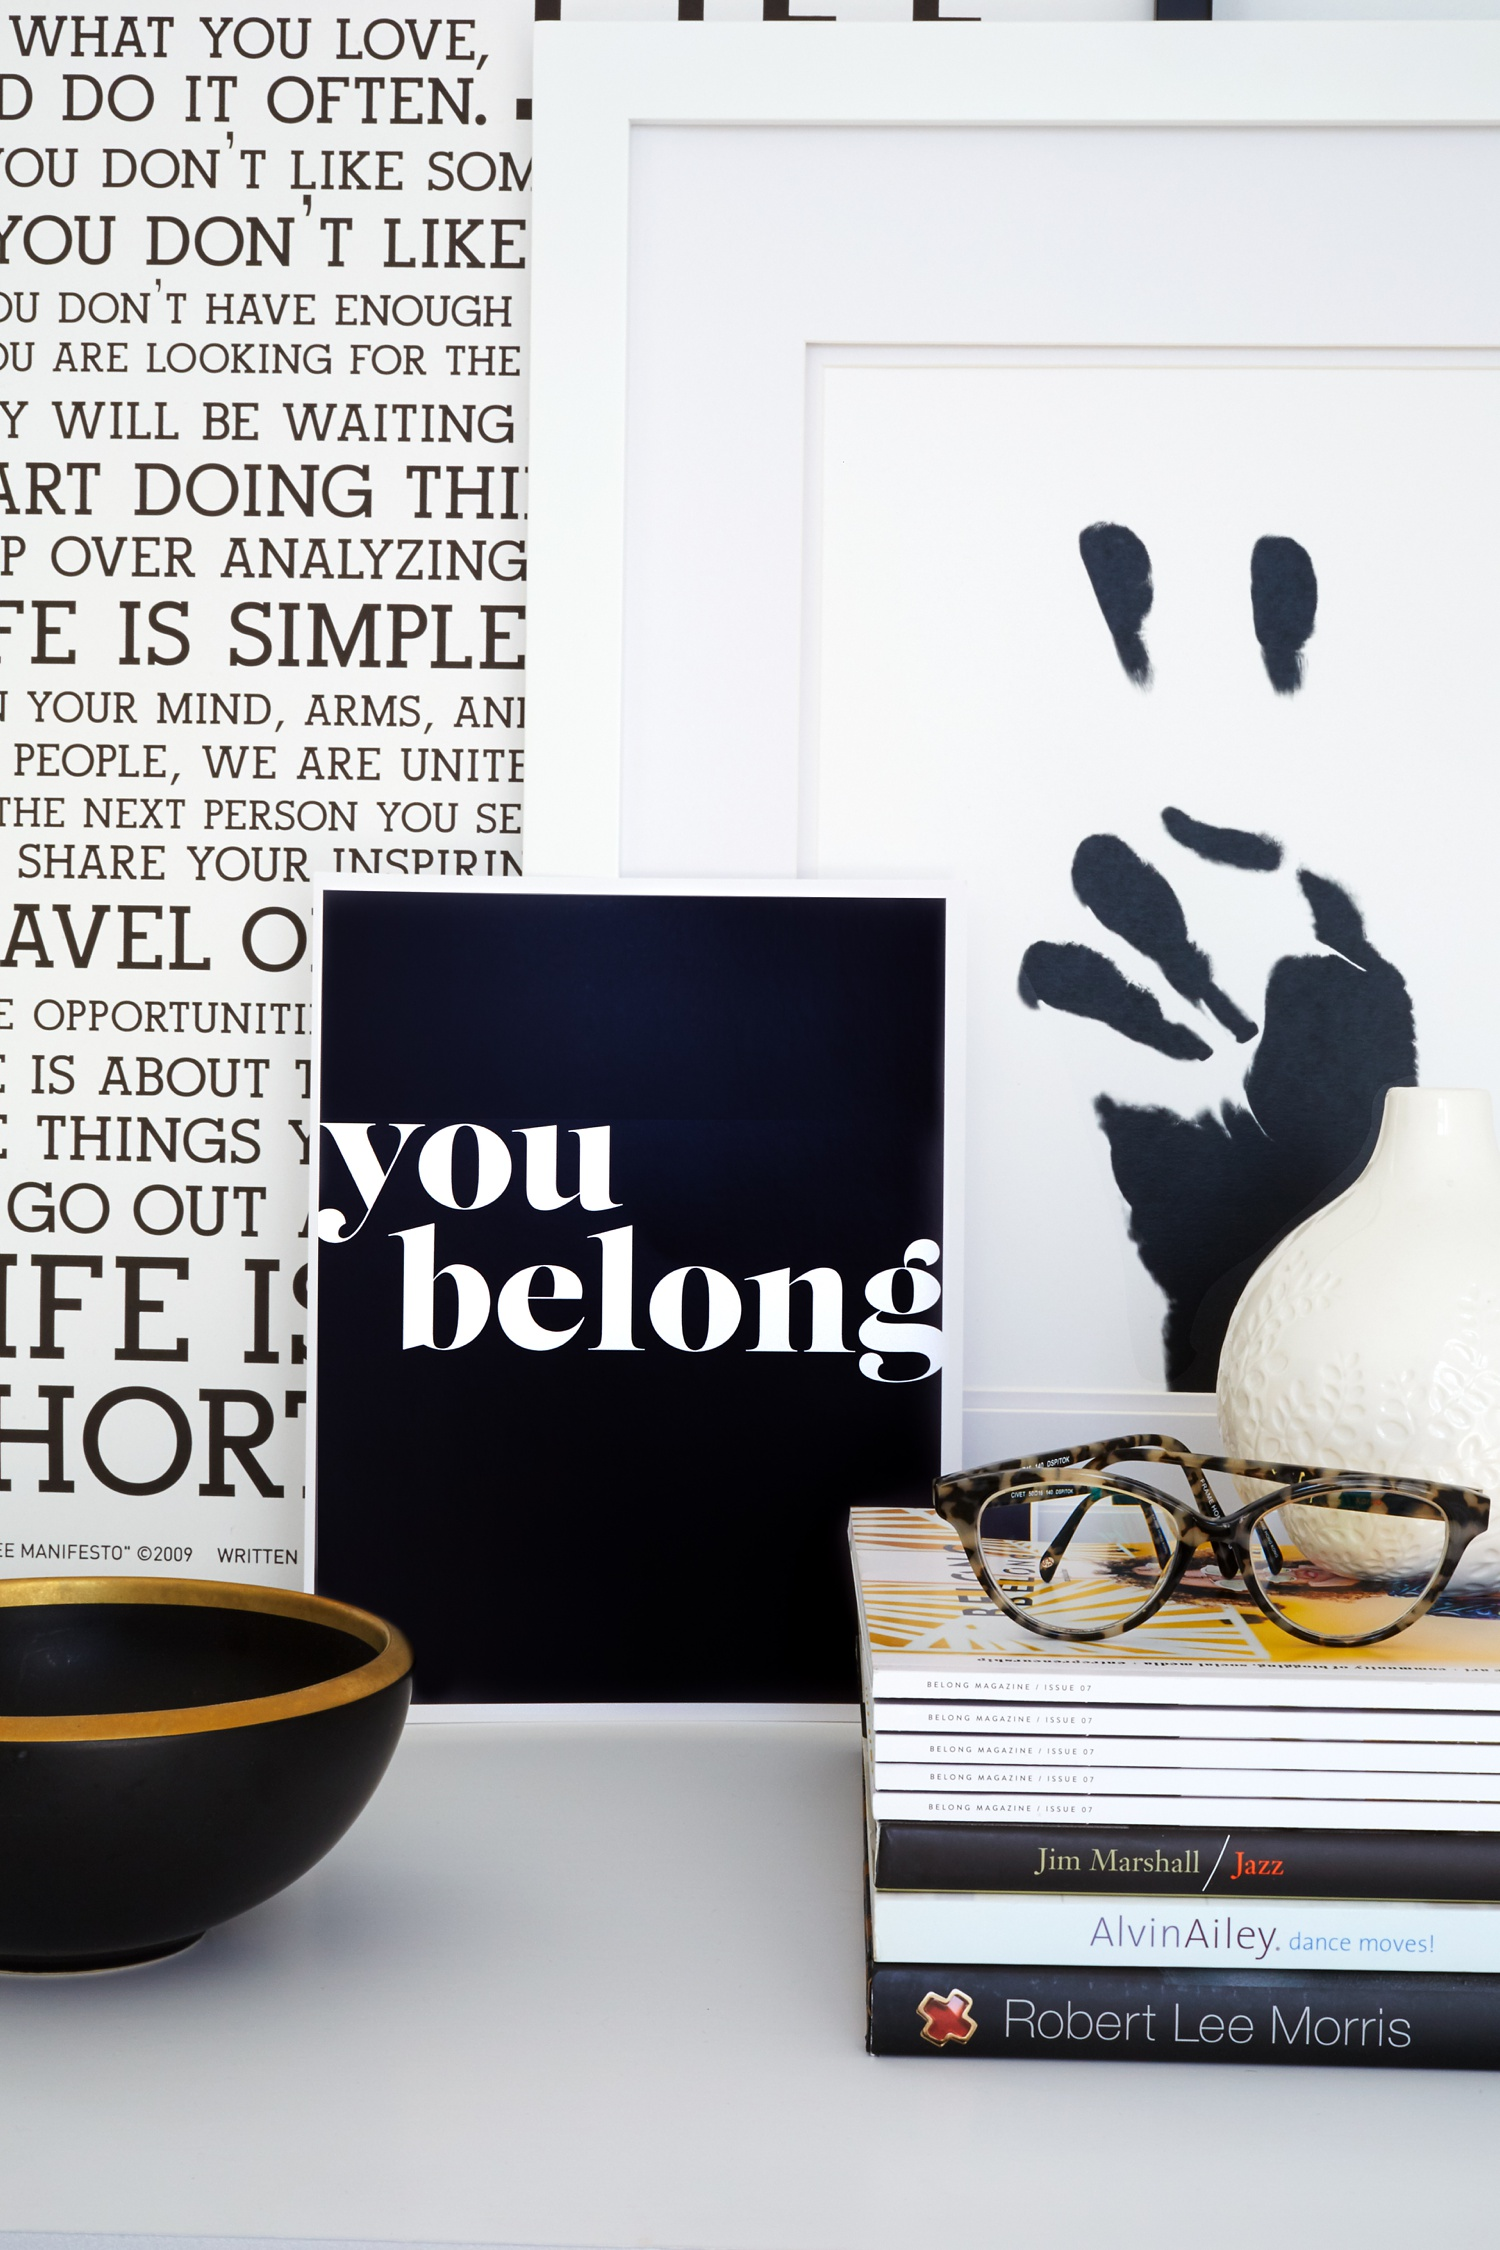 Stack of magazines and books with glasses and Holestee Manifesto